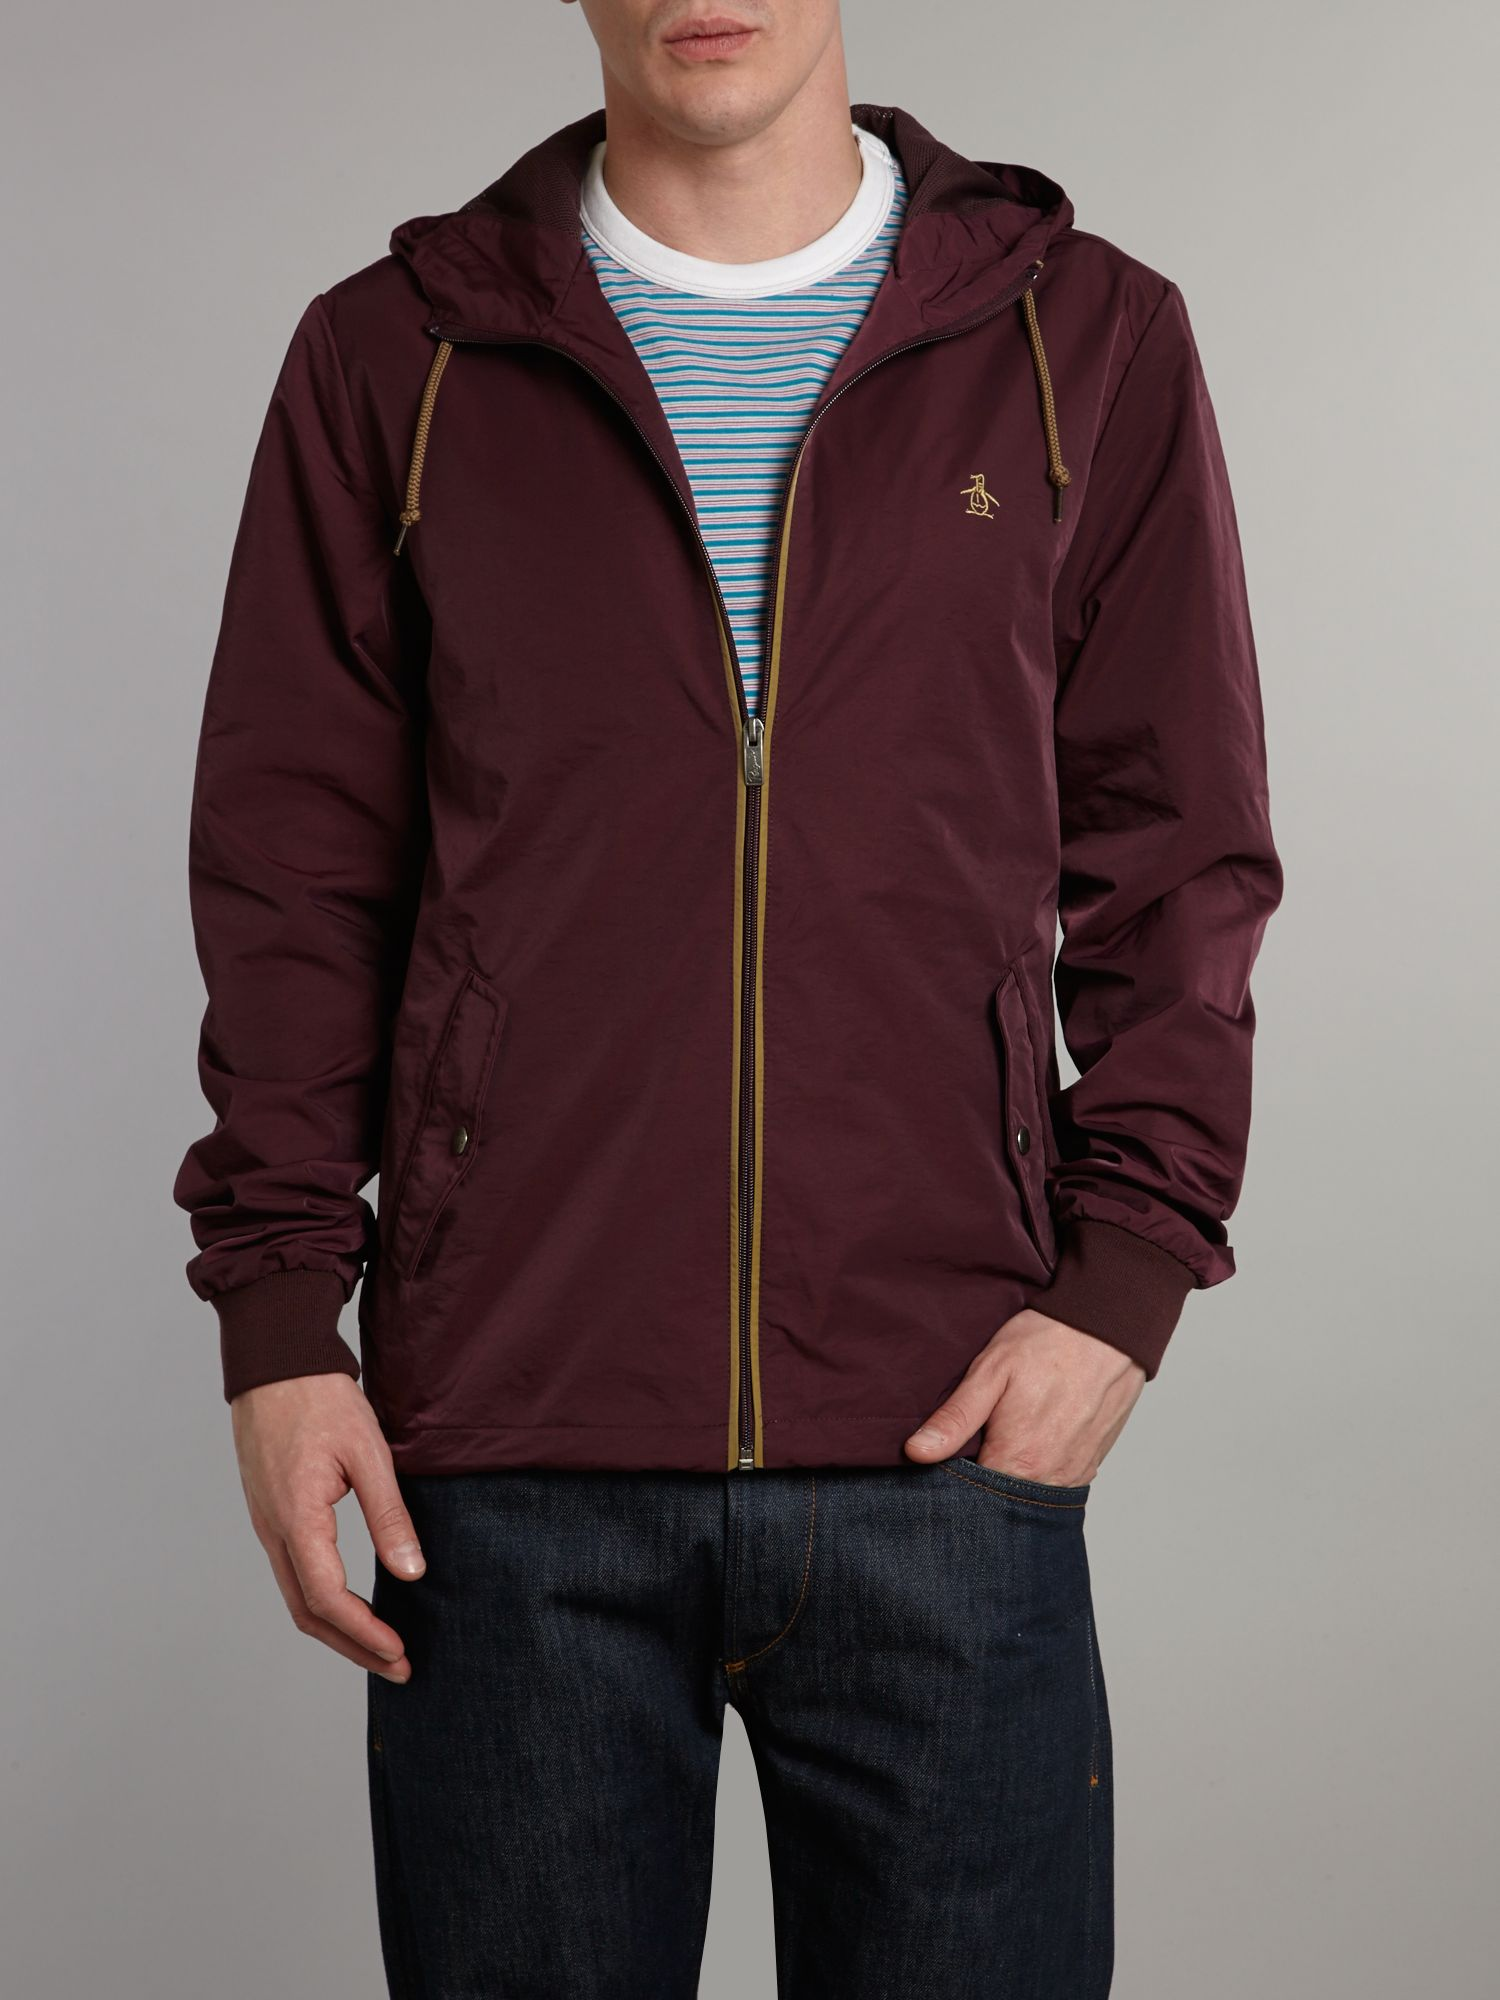 Hooded ratner jacket